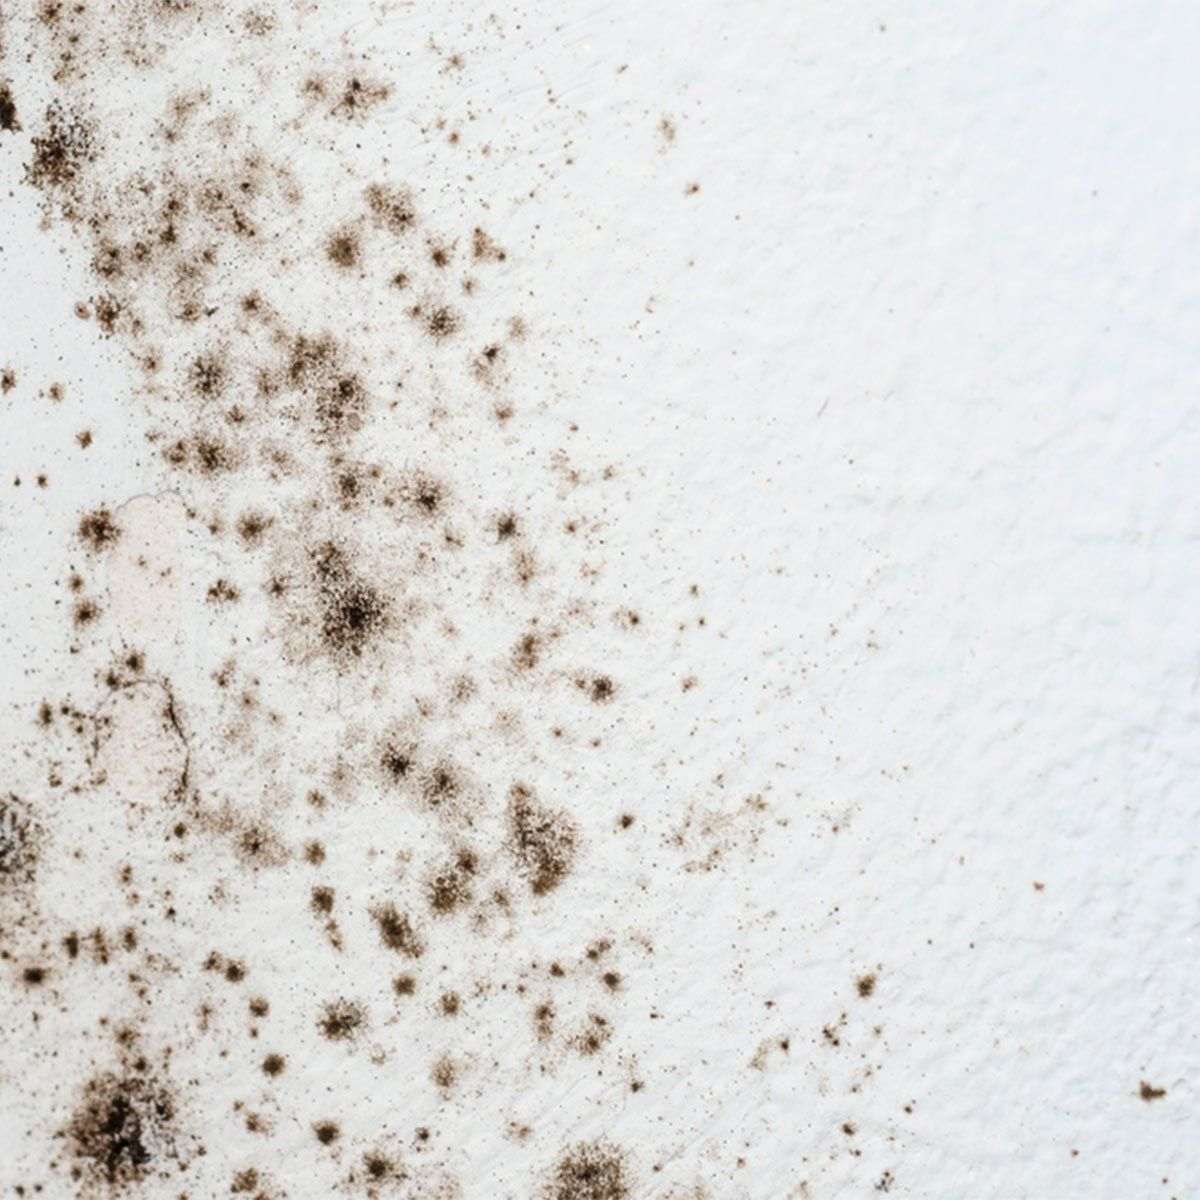 How To Get Rid Of Mold On Walls In The Bathroom Bathroom Mold